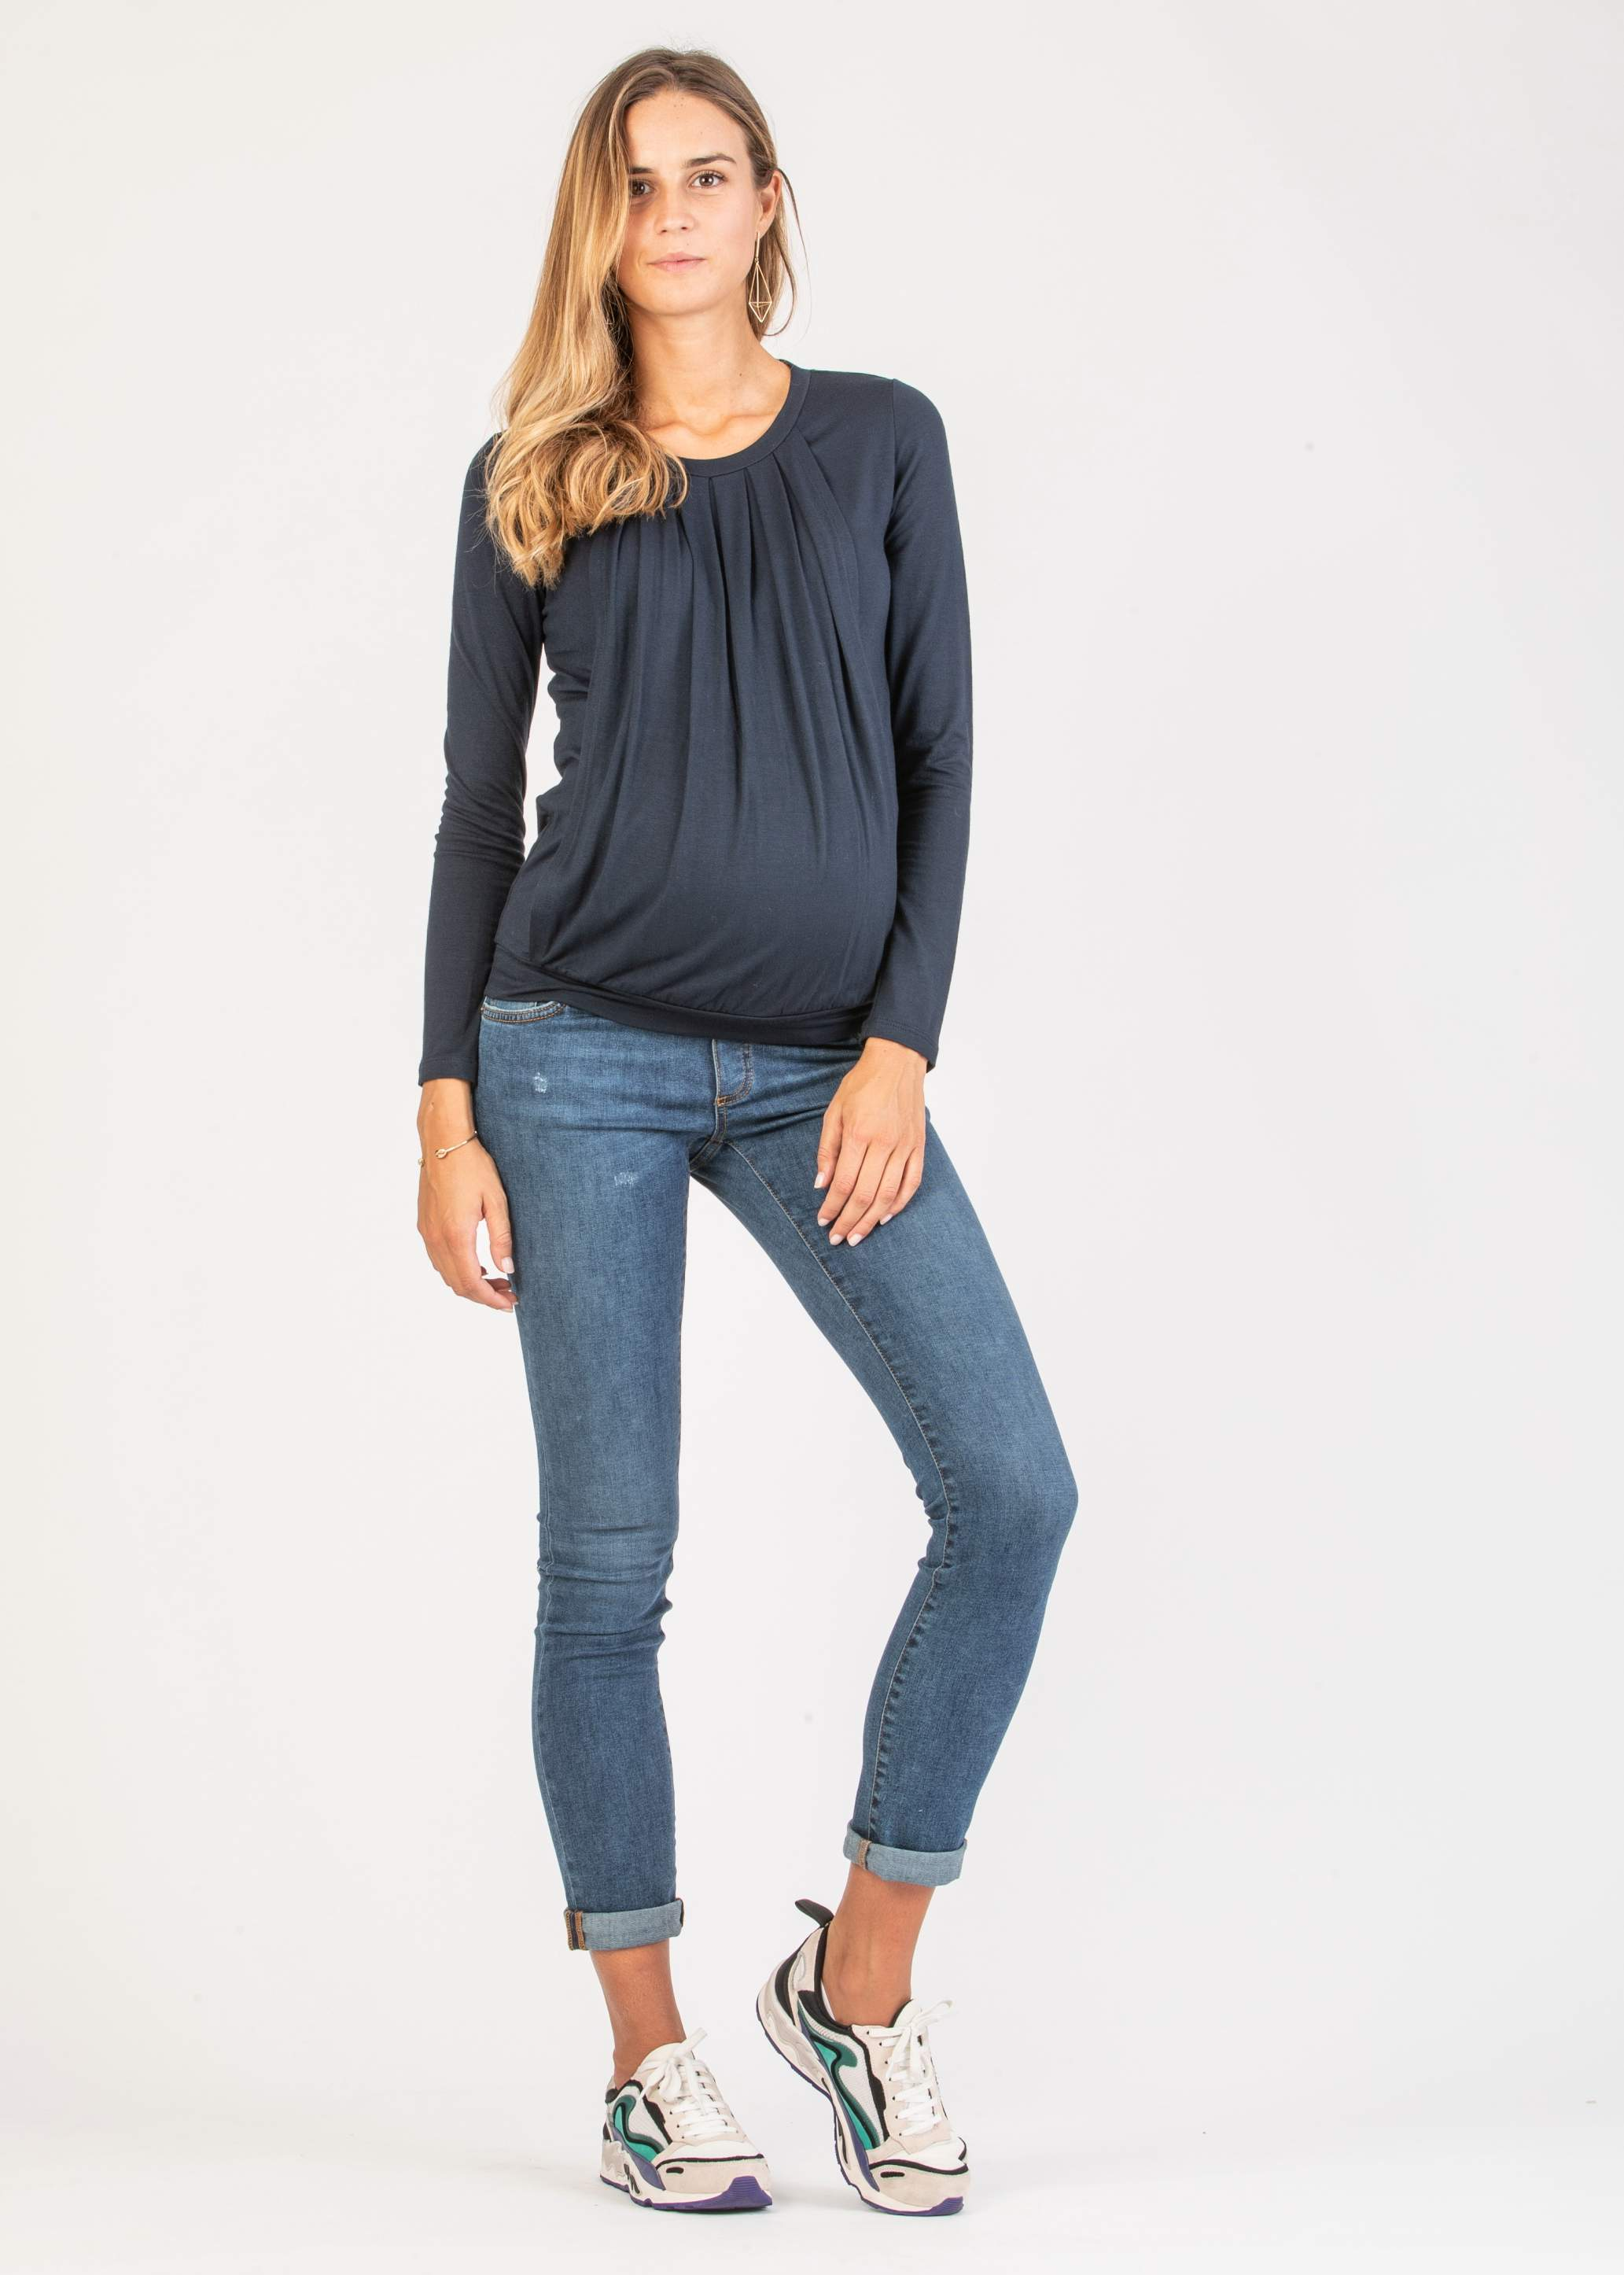 Long Sleeve Maternity & Nursing Top with Front Drapery